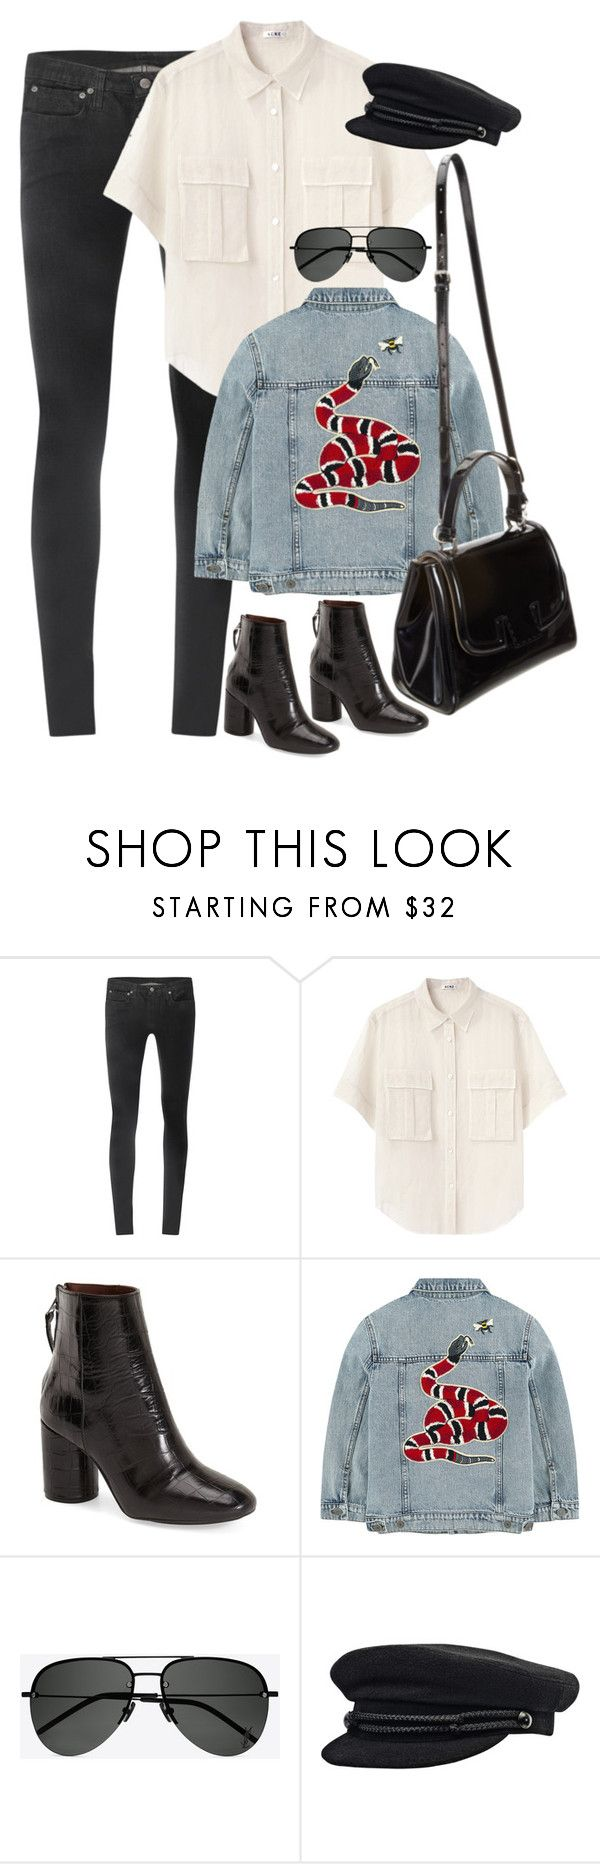 """""""Sem título #1542"""" by oh-its-anna ❤ liked on Polyvore featuring Helmut Lang, Acne Studios, Topshop, Gucci, Fendi and Yves Saint Laurent"""